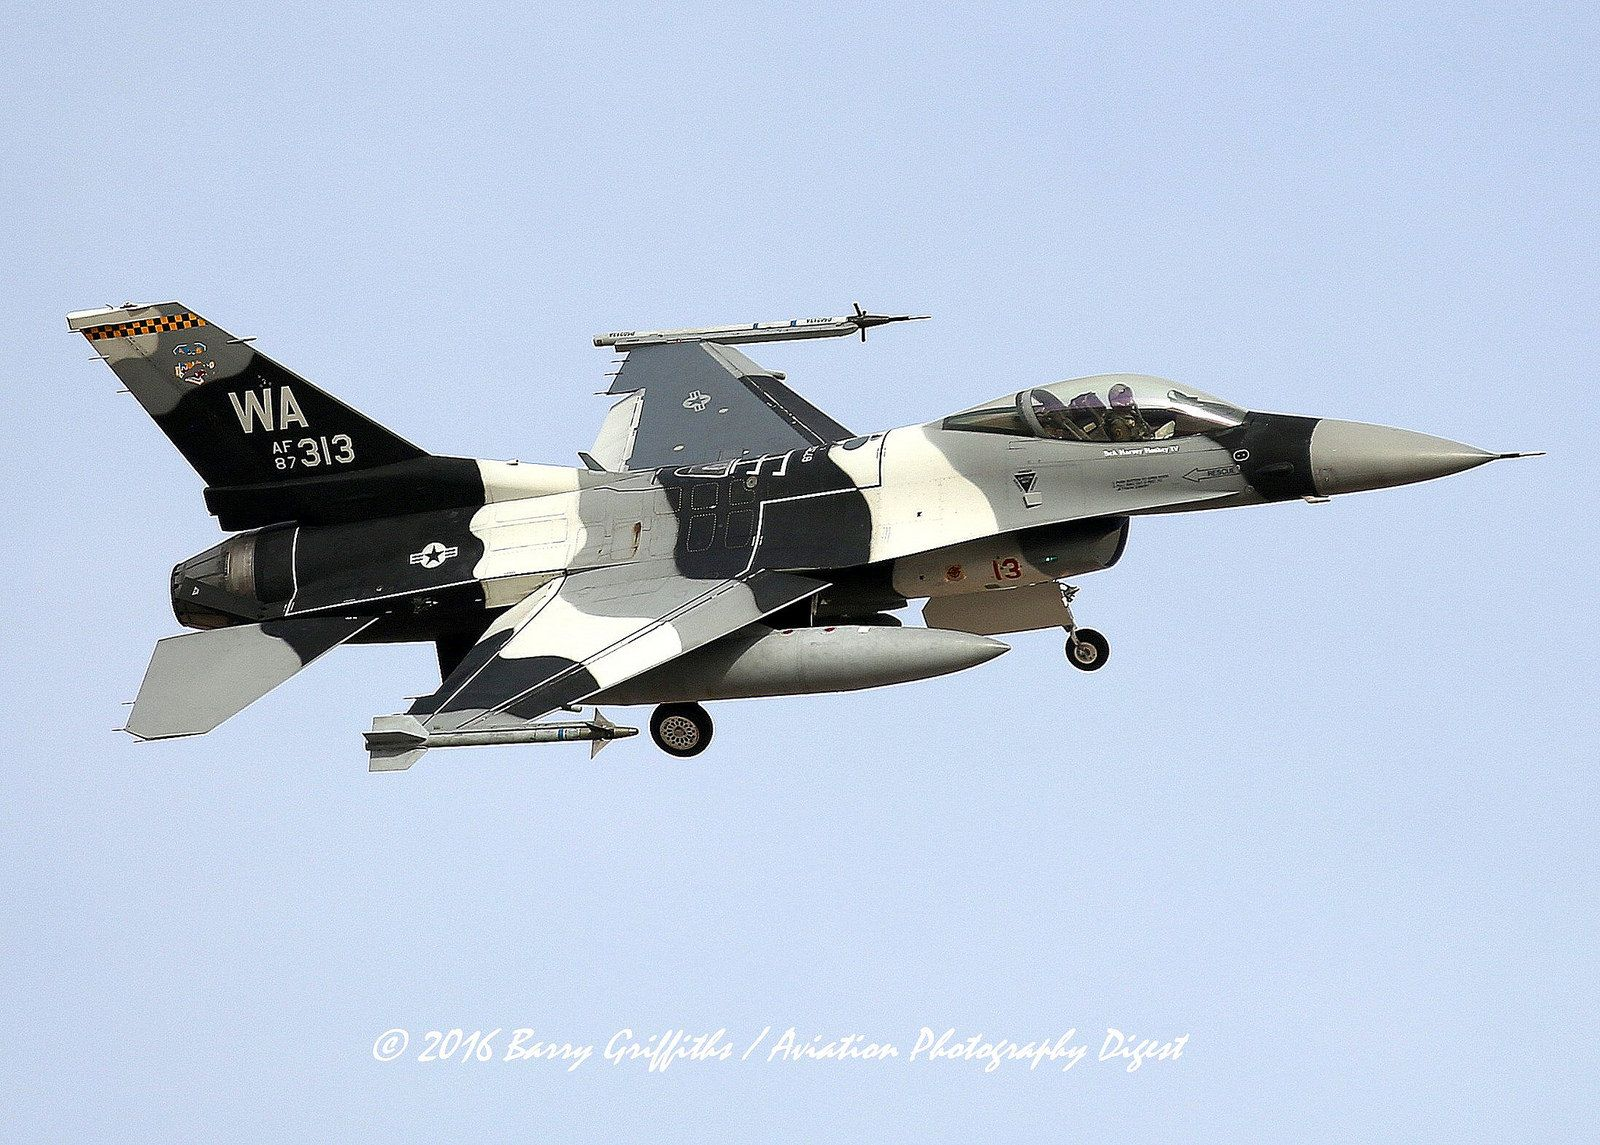 Air Force Aggressor F 16 painted as Russia's Su 57 to train